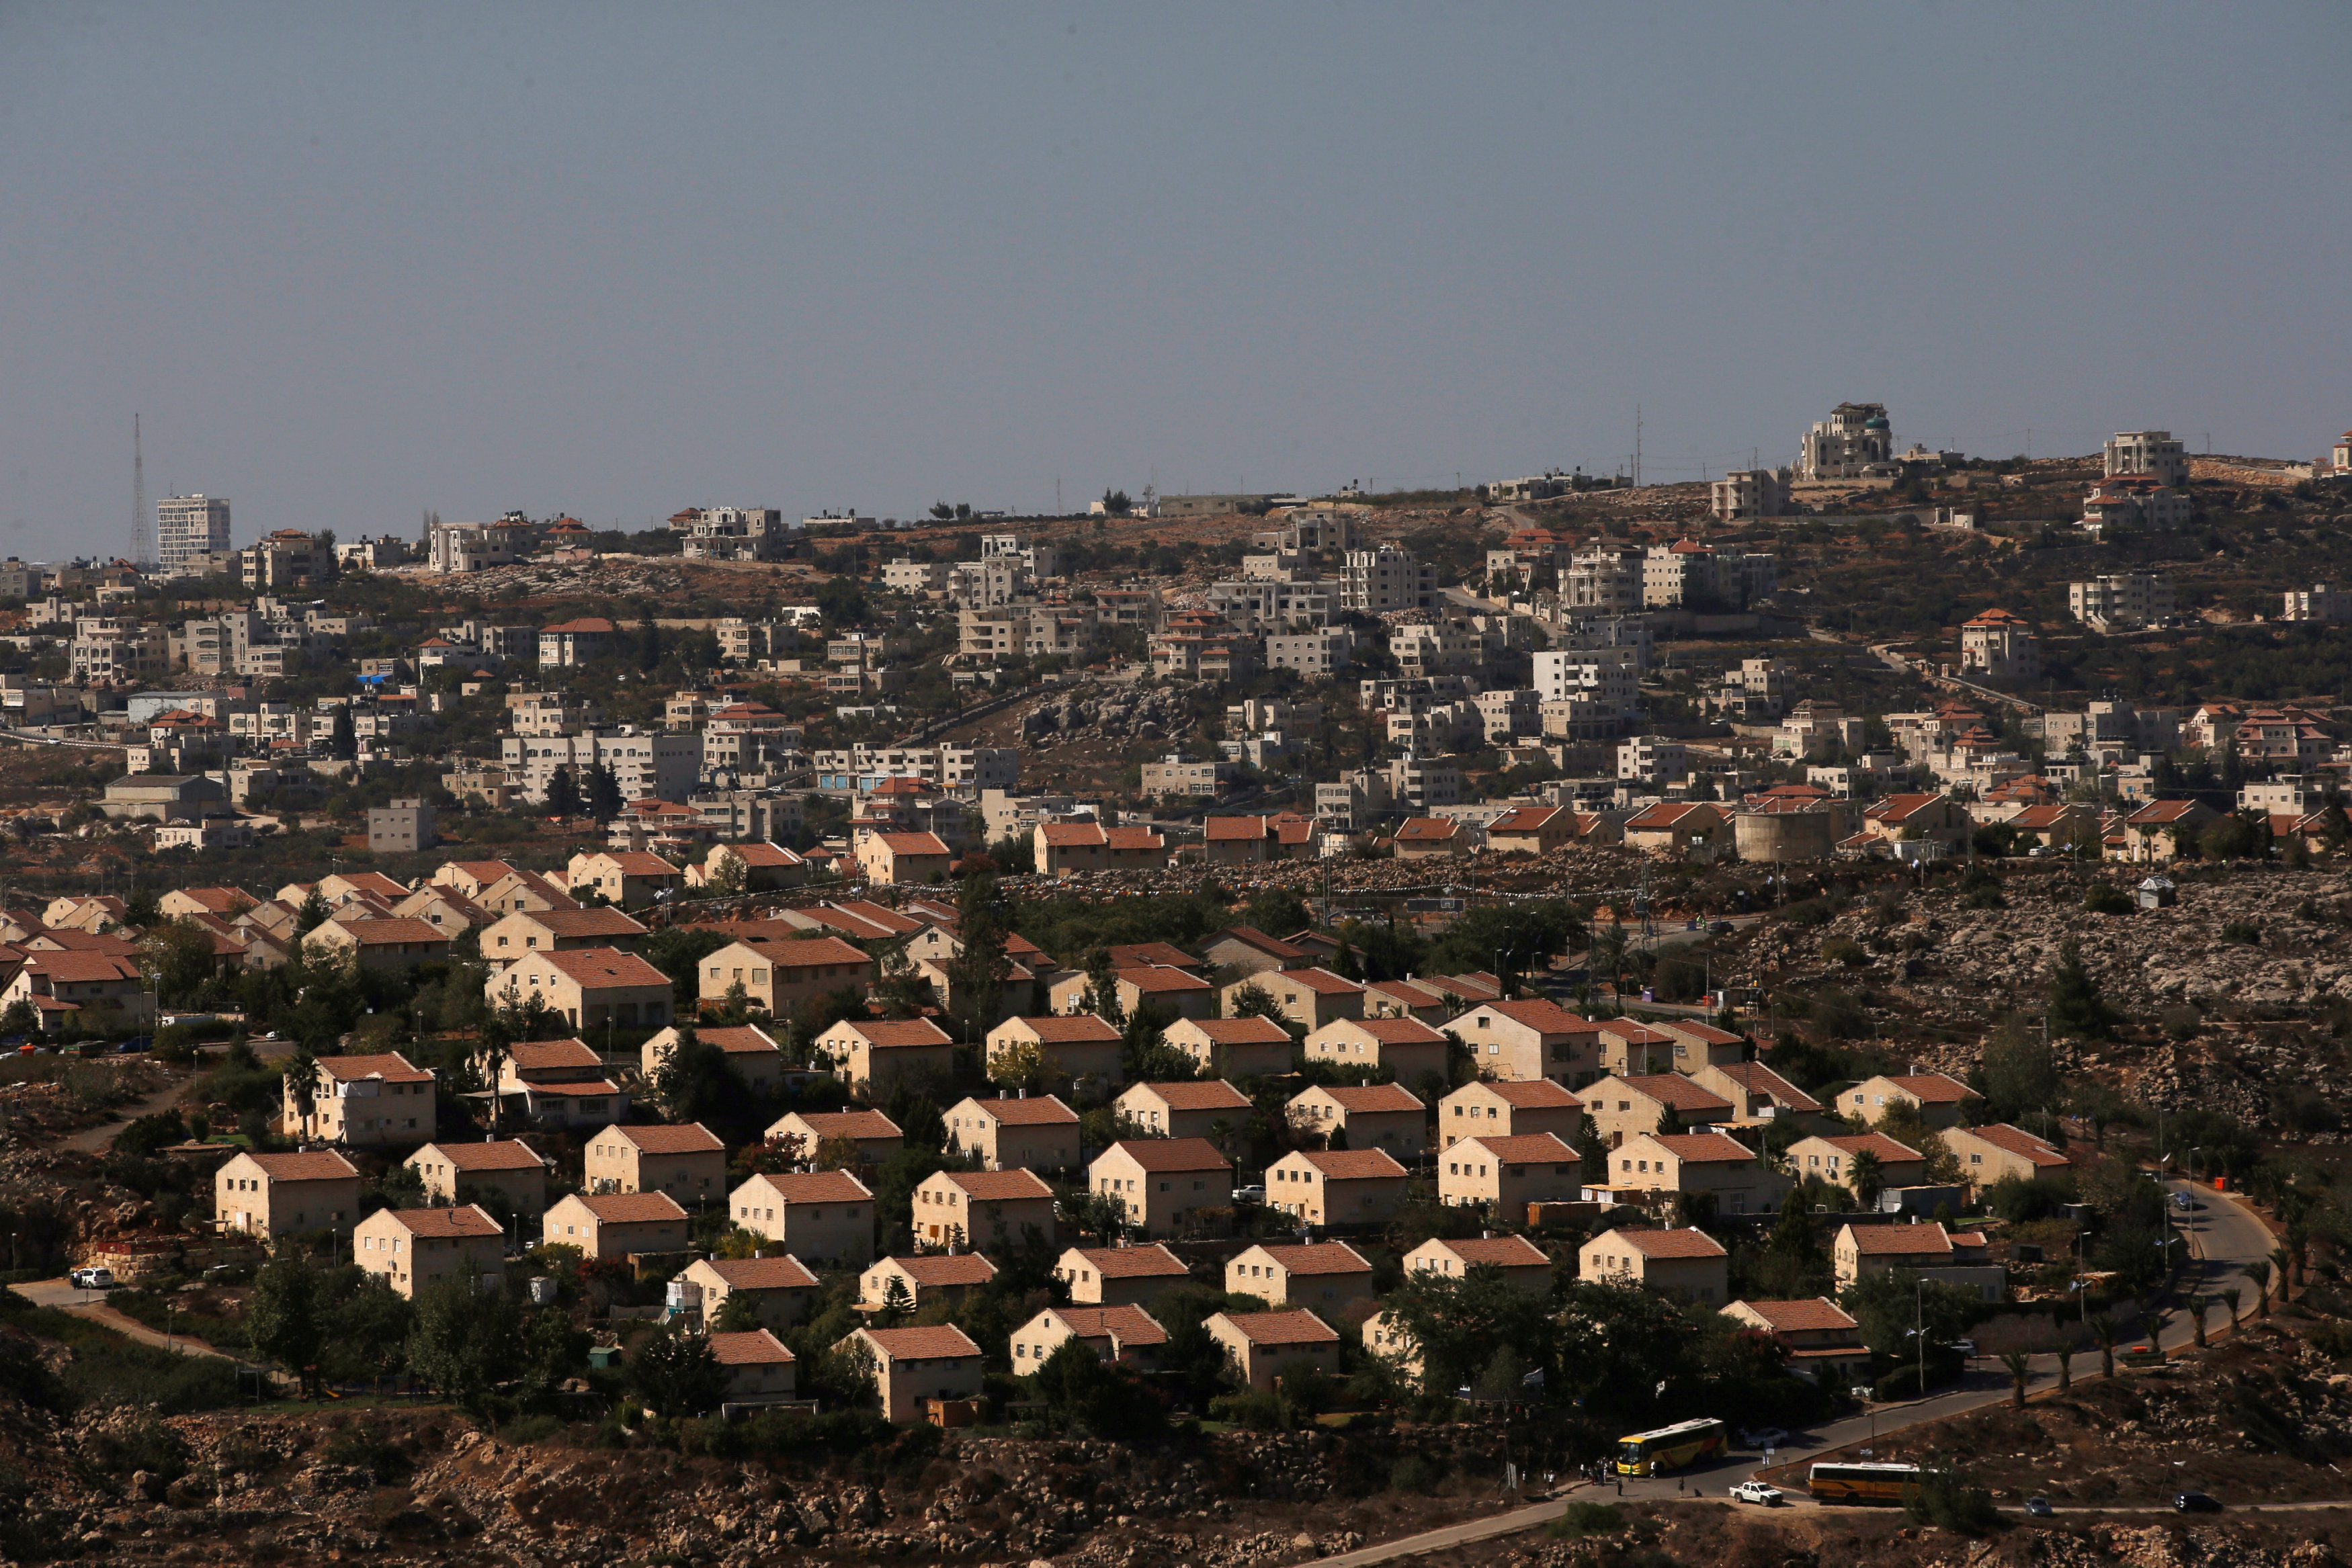 The West Bank Jewish settlement of Ofra is photographed as seen from the Jewish settler outpost of Amona in the occupied West Bank, October 20, 2016. The Palestinian village of Silwad is seen in the background.